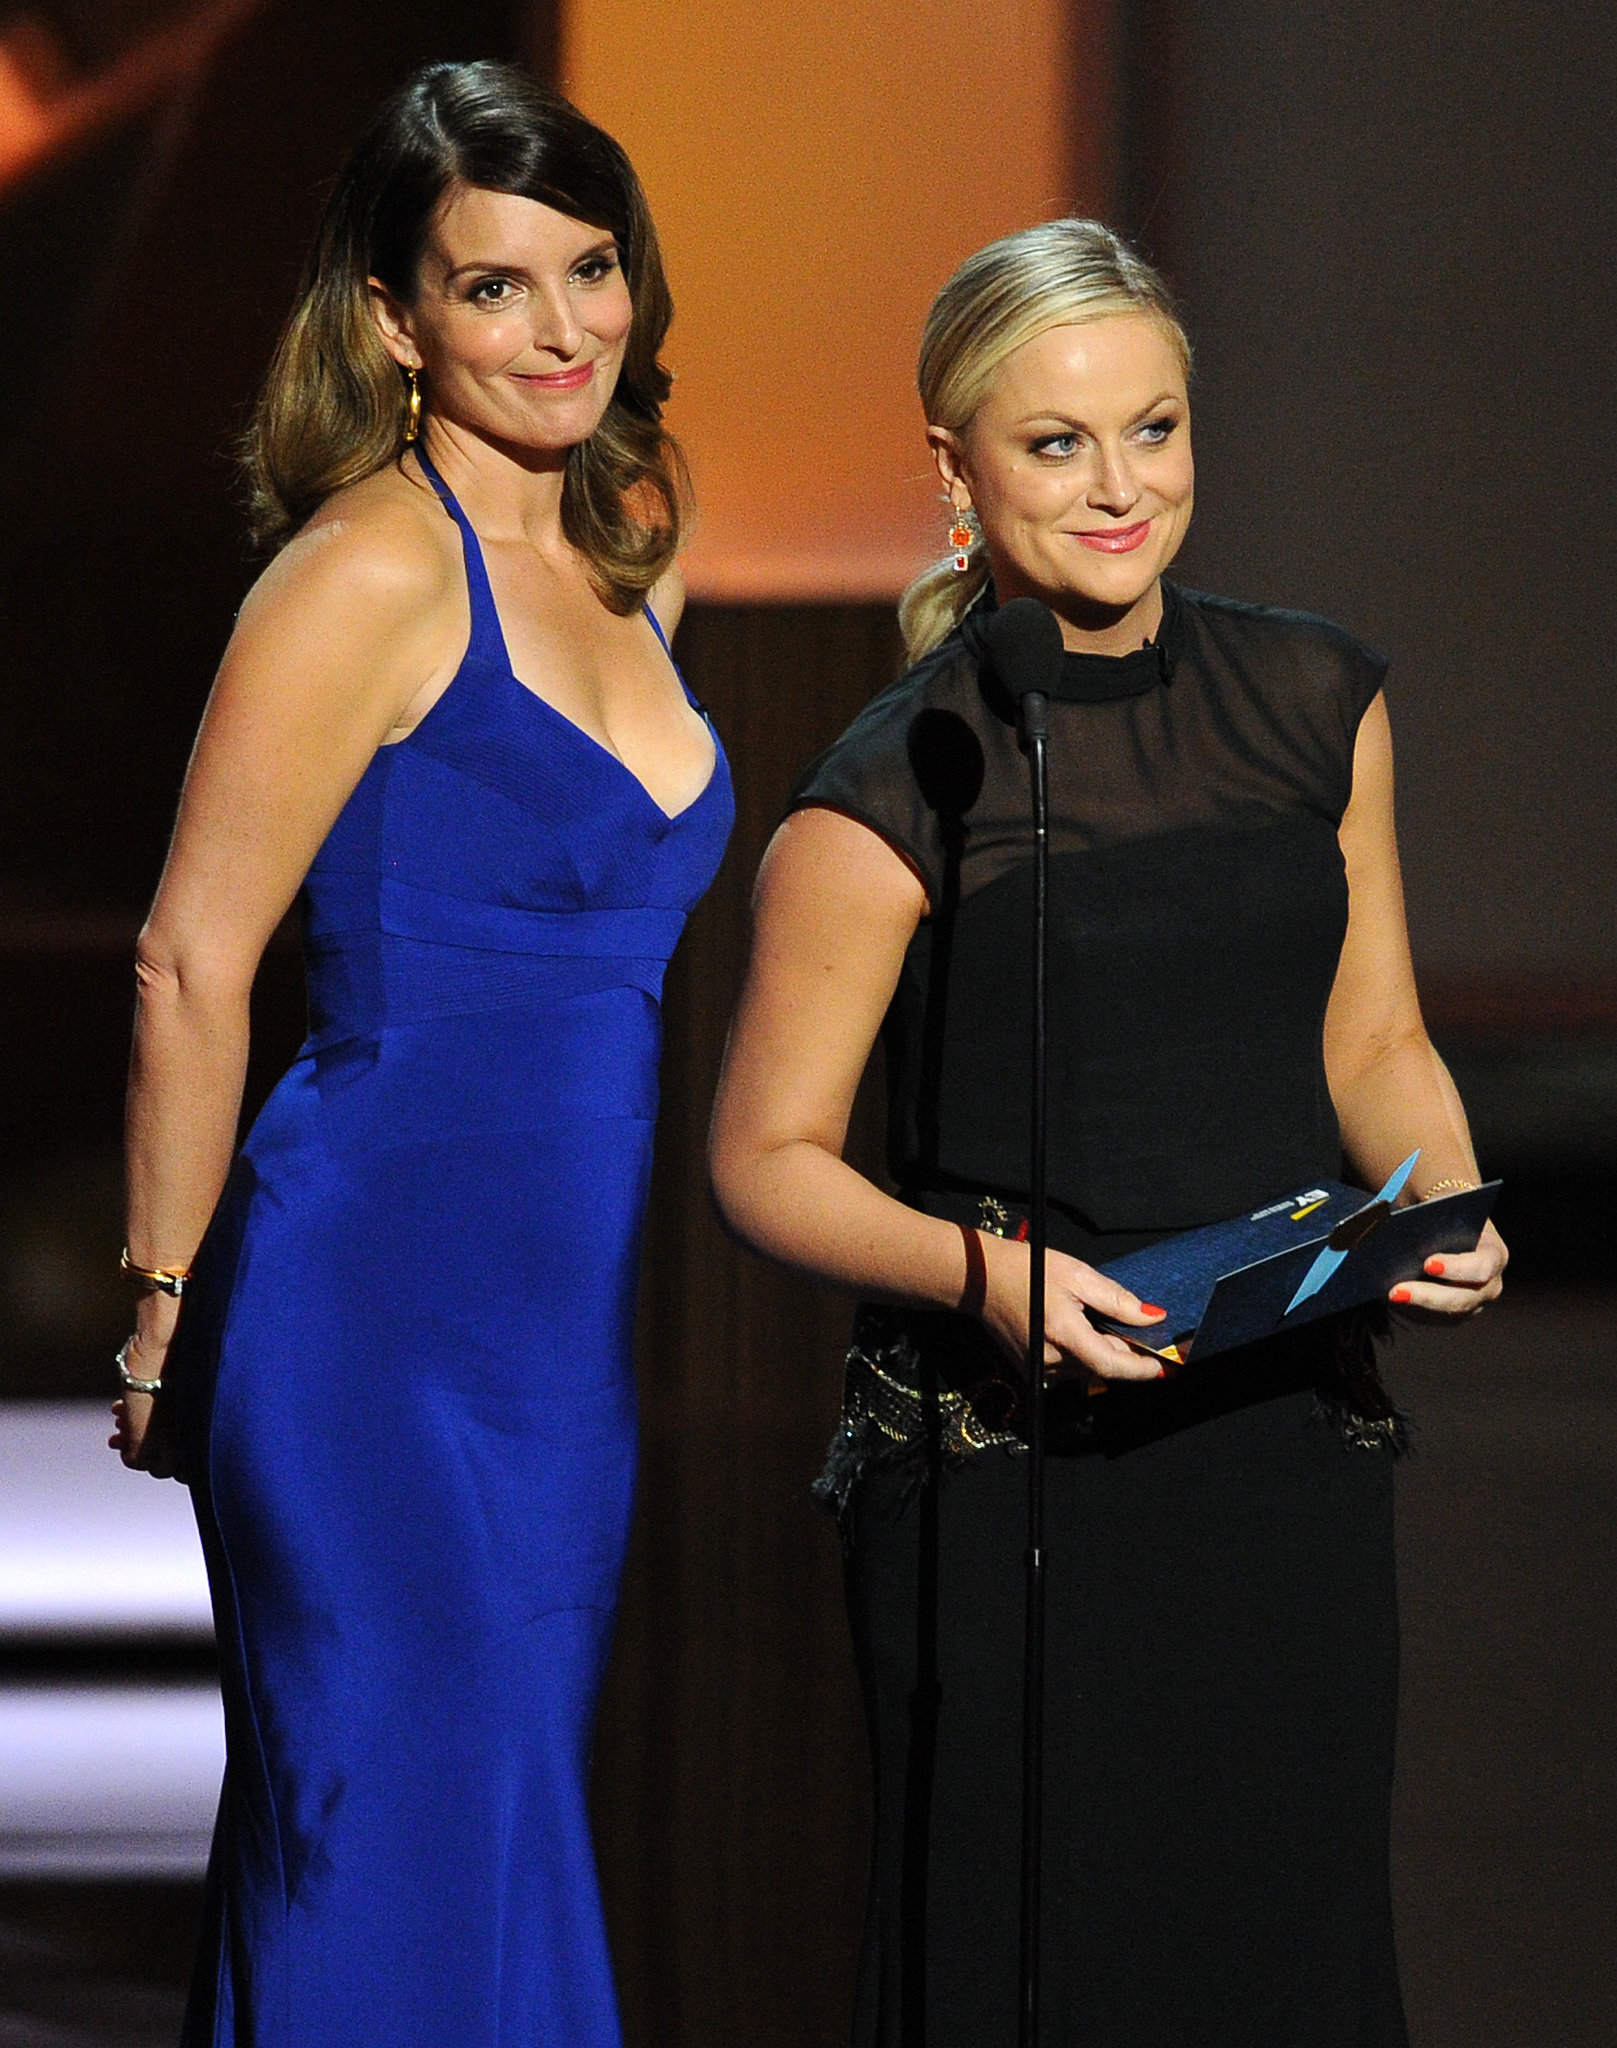 Tina Fey and Amy Poehler had the crowd cracking up at the start of the show when they asked Neil Patrick Harris to take off his pants.